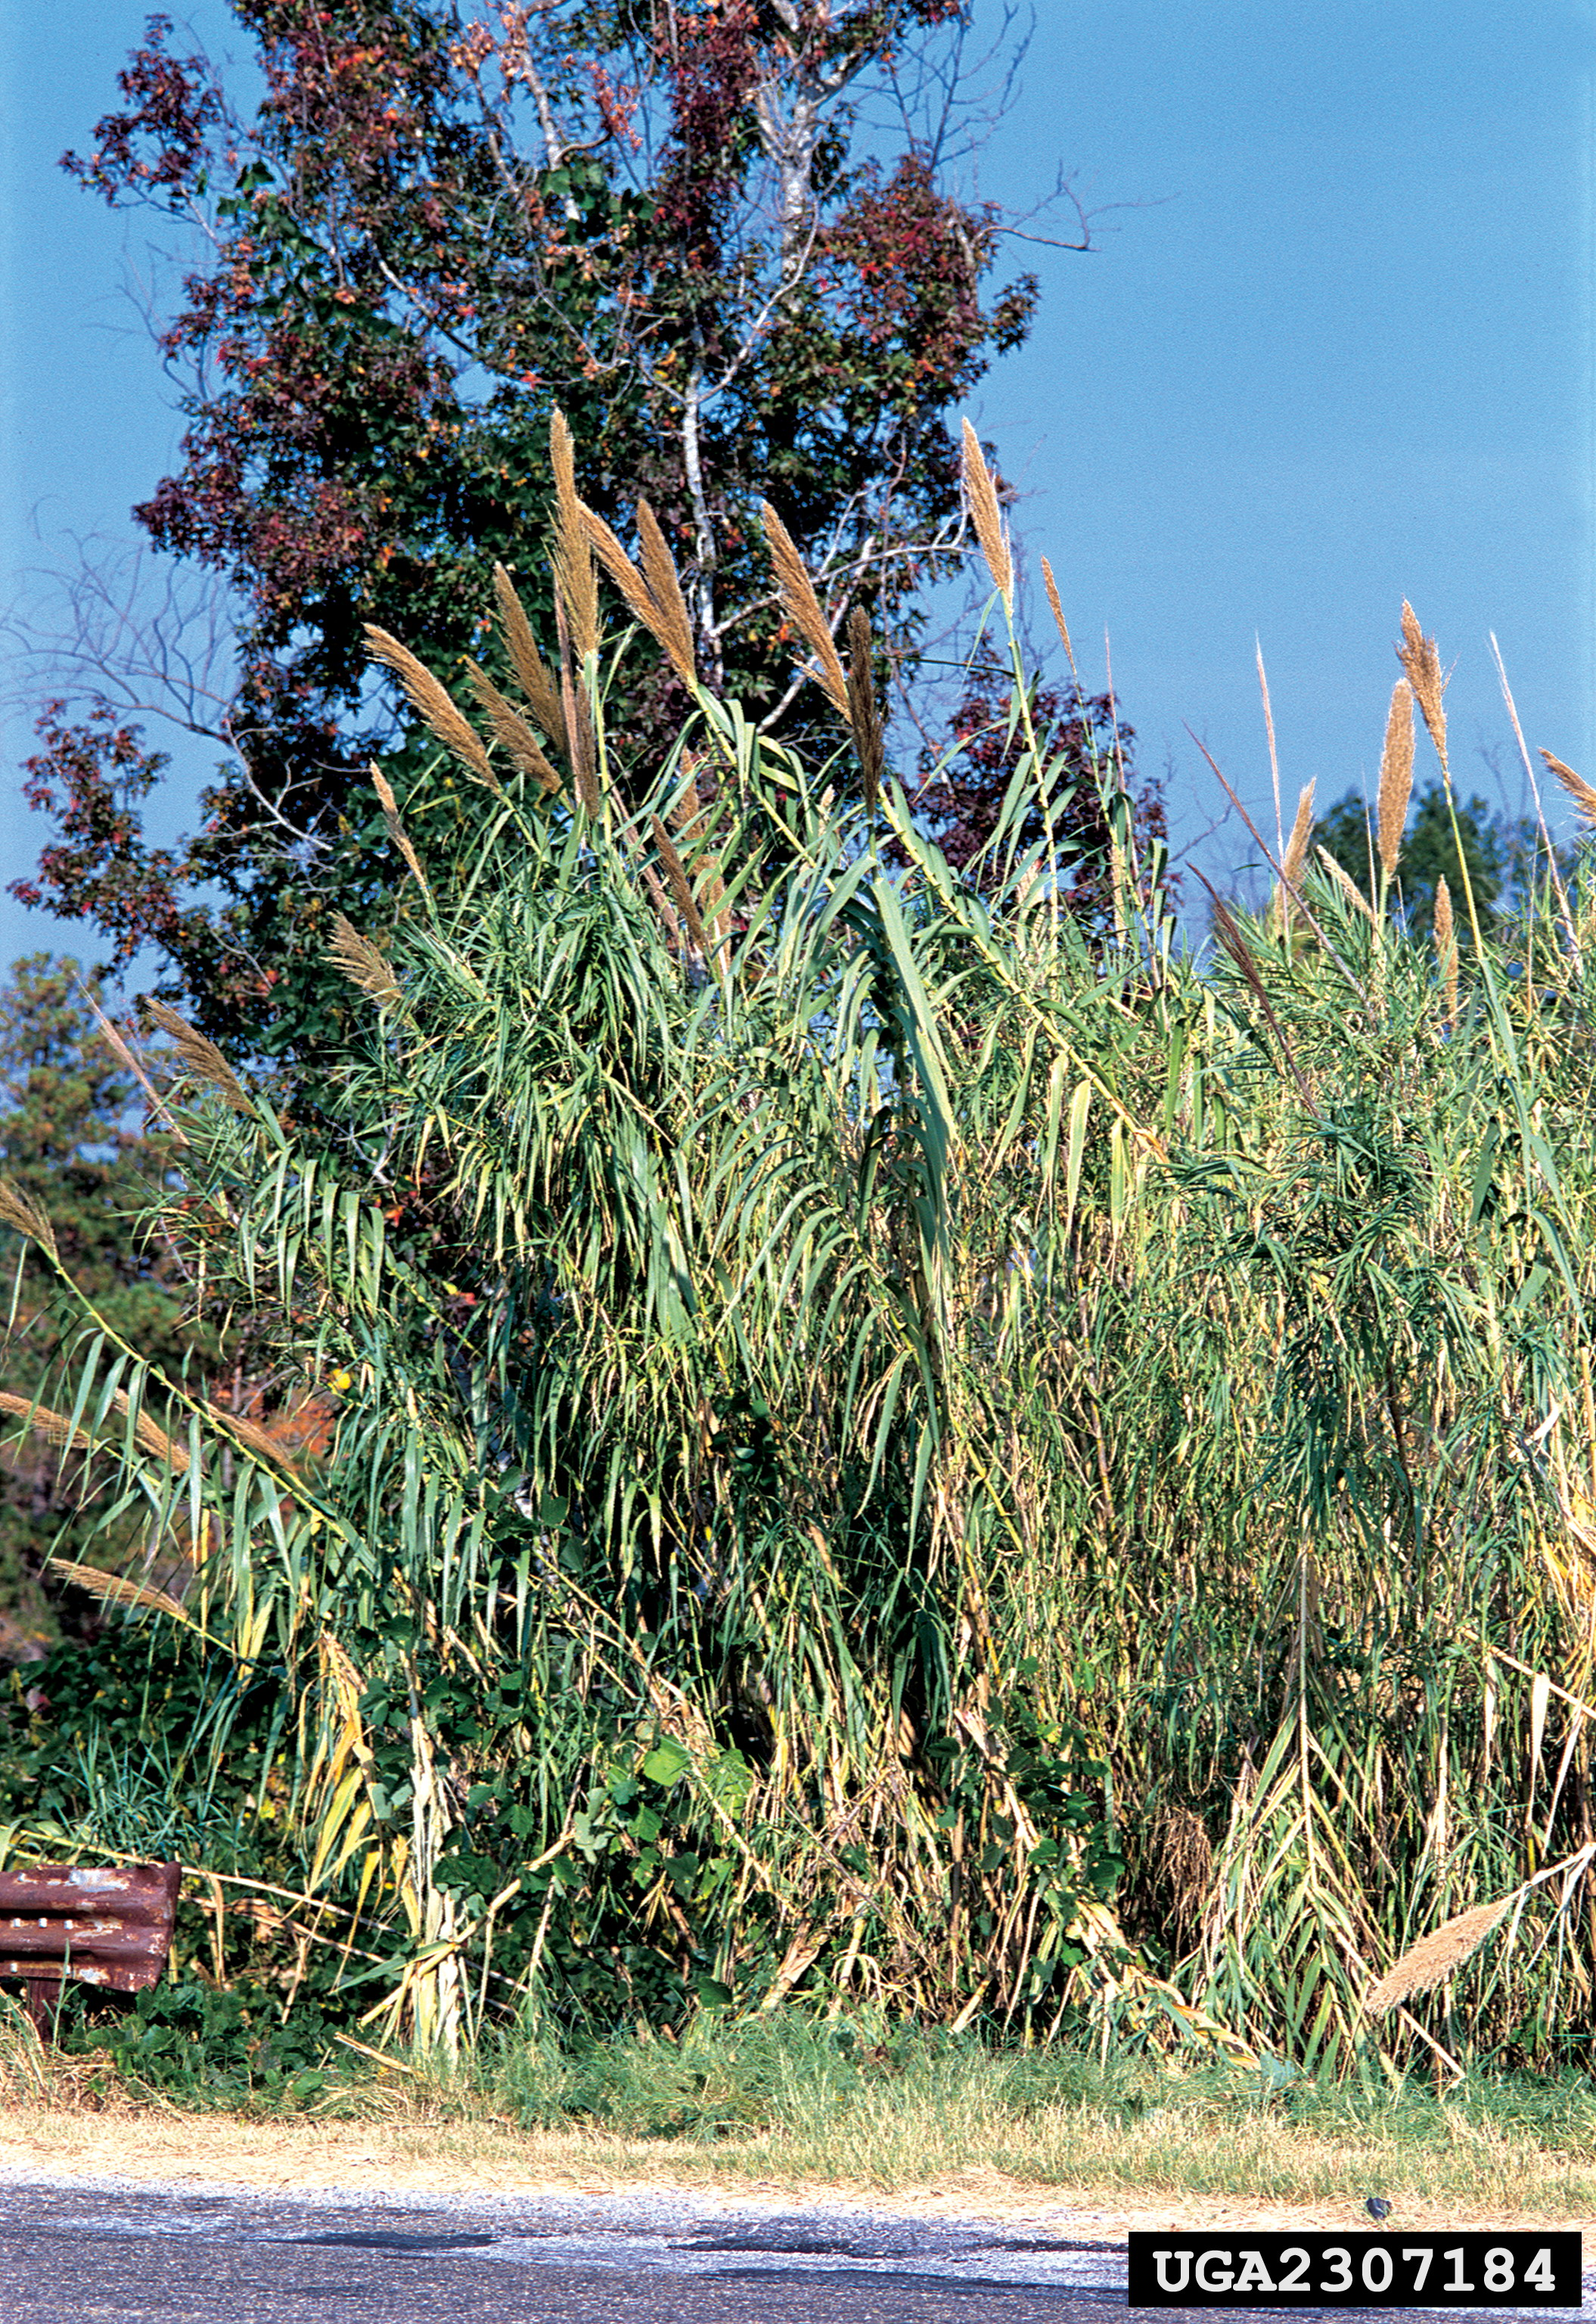 Giant Reed